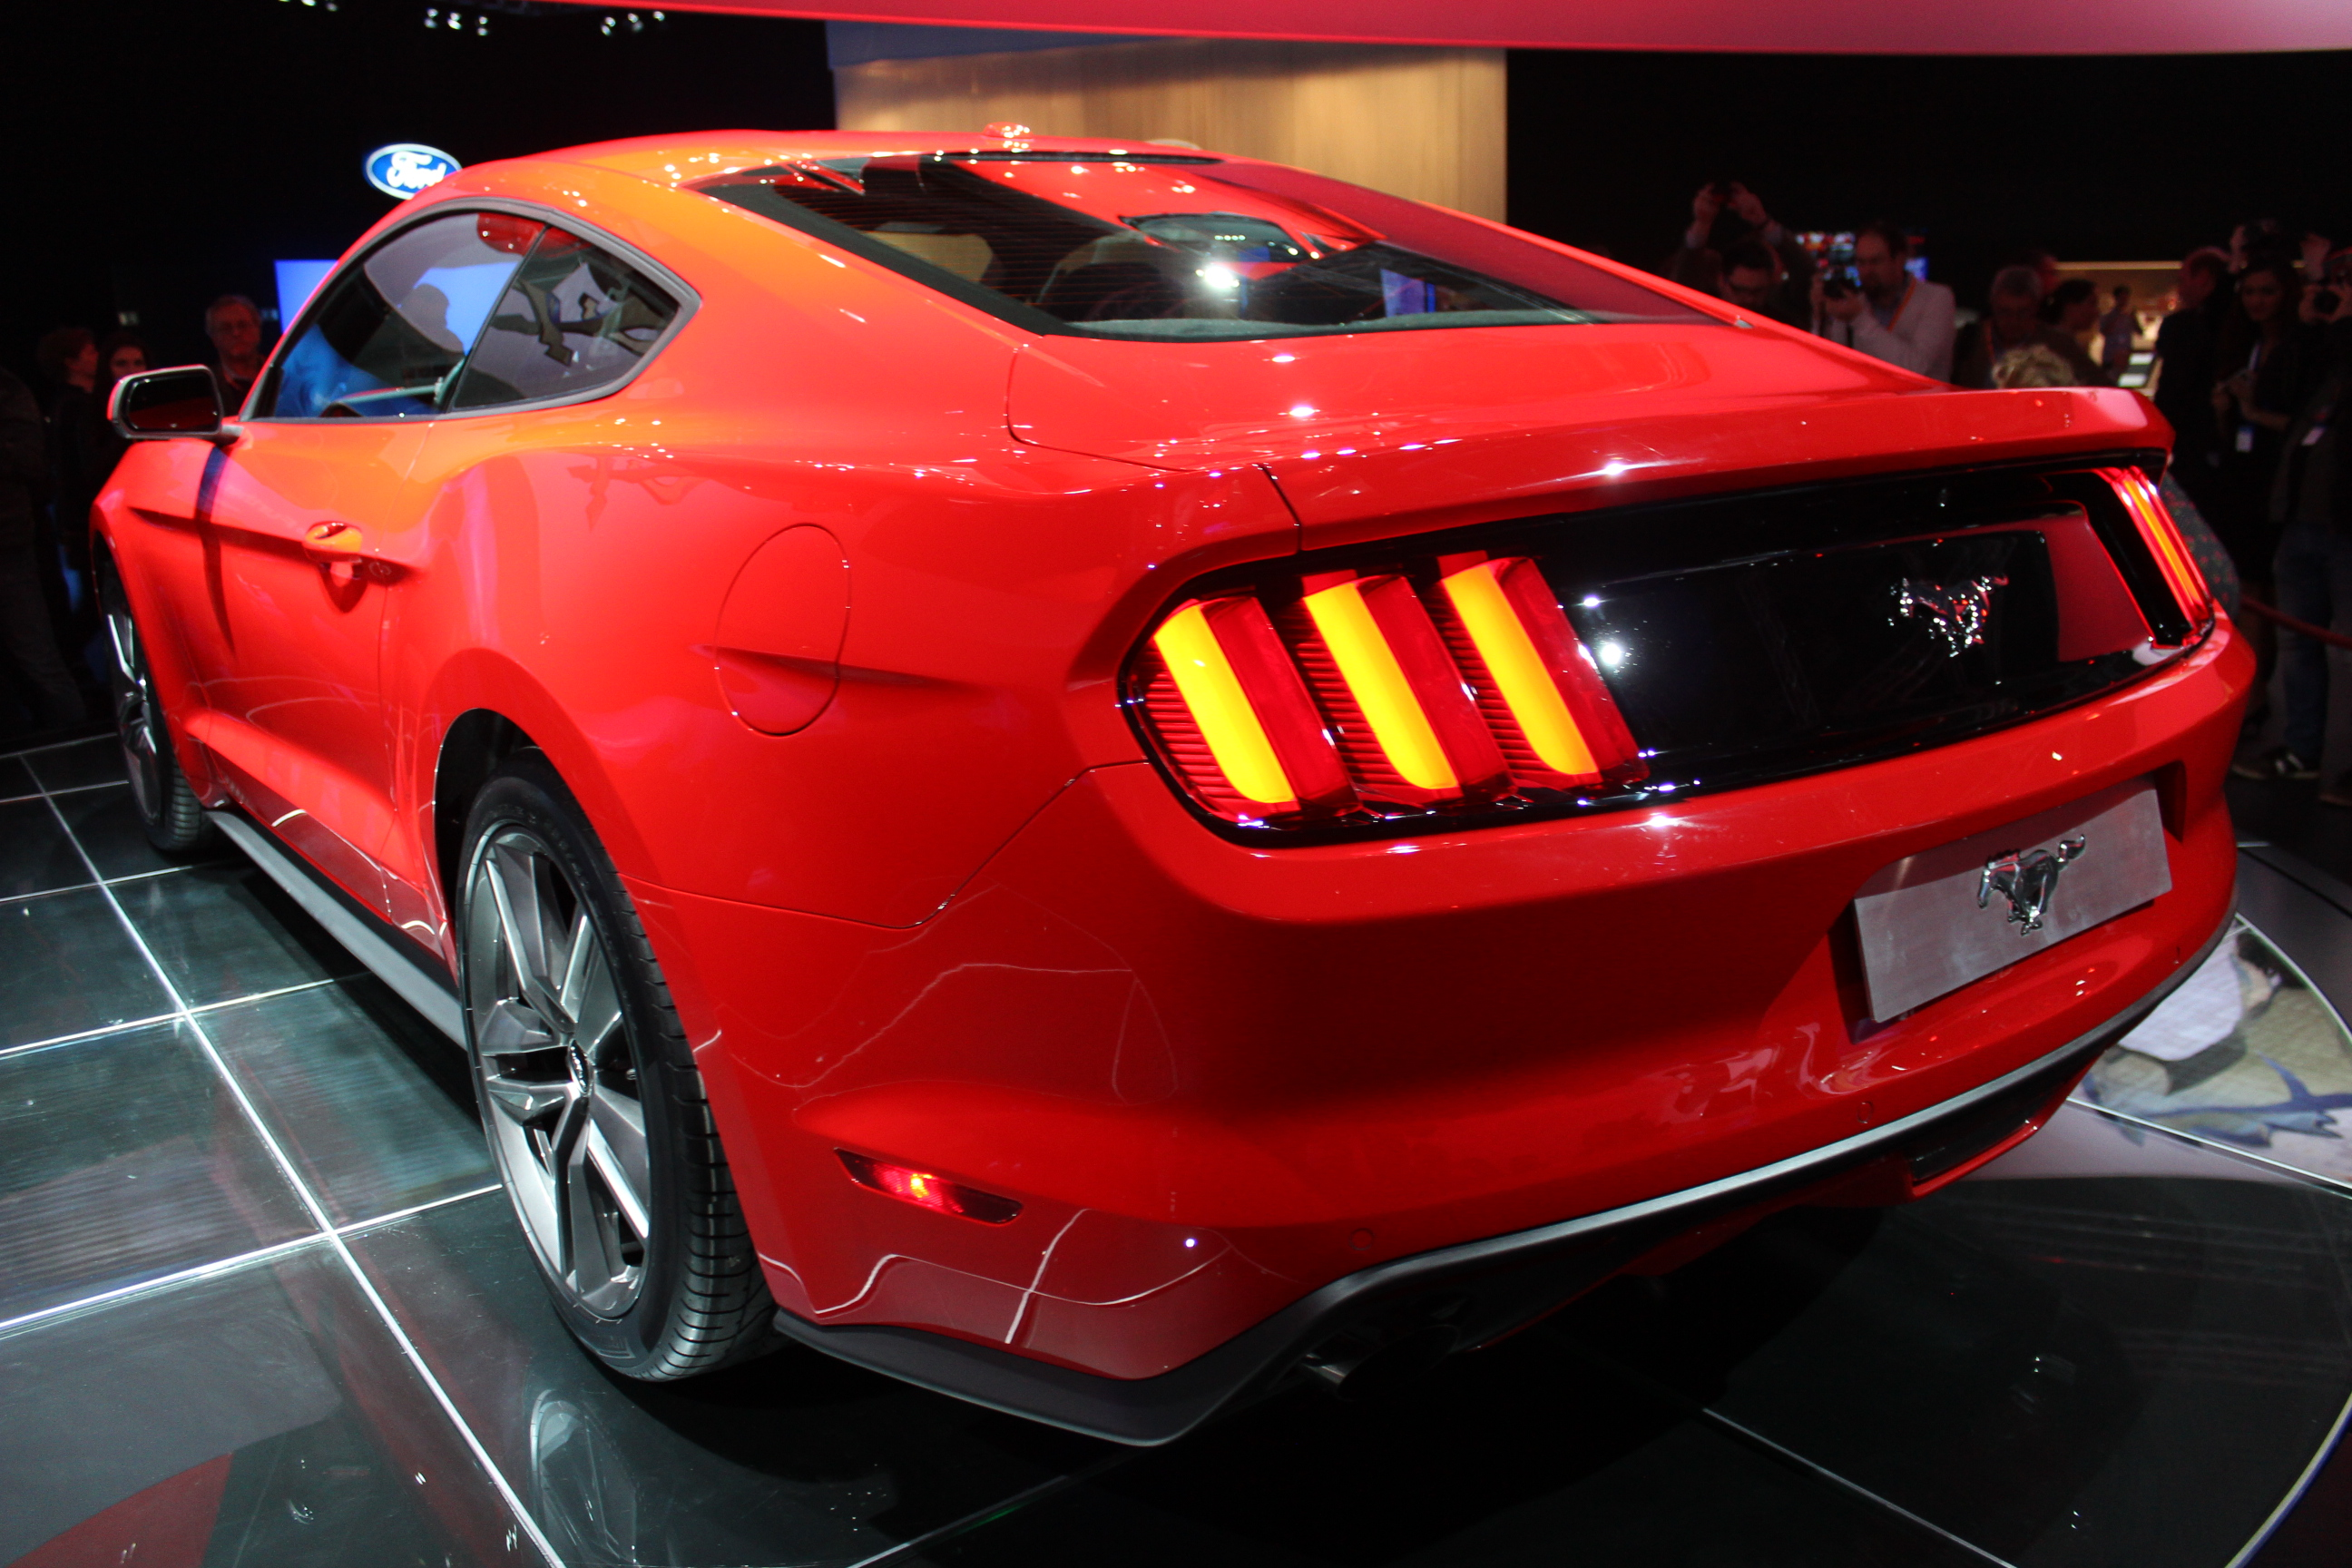 2015 ford mustang gt sixi me g n ration dark cars wallpapers. Black Bedroom Furniture Sets. Home Design Ideas